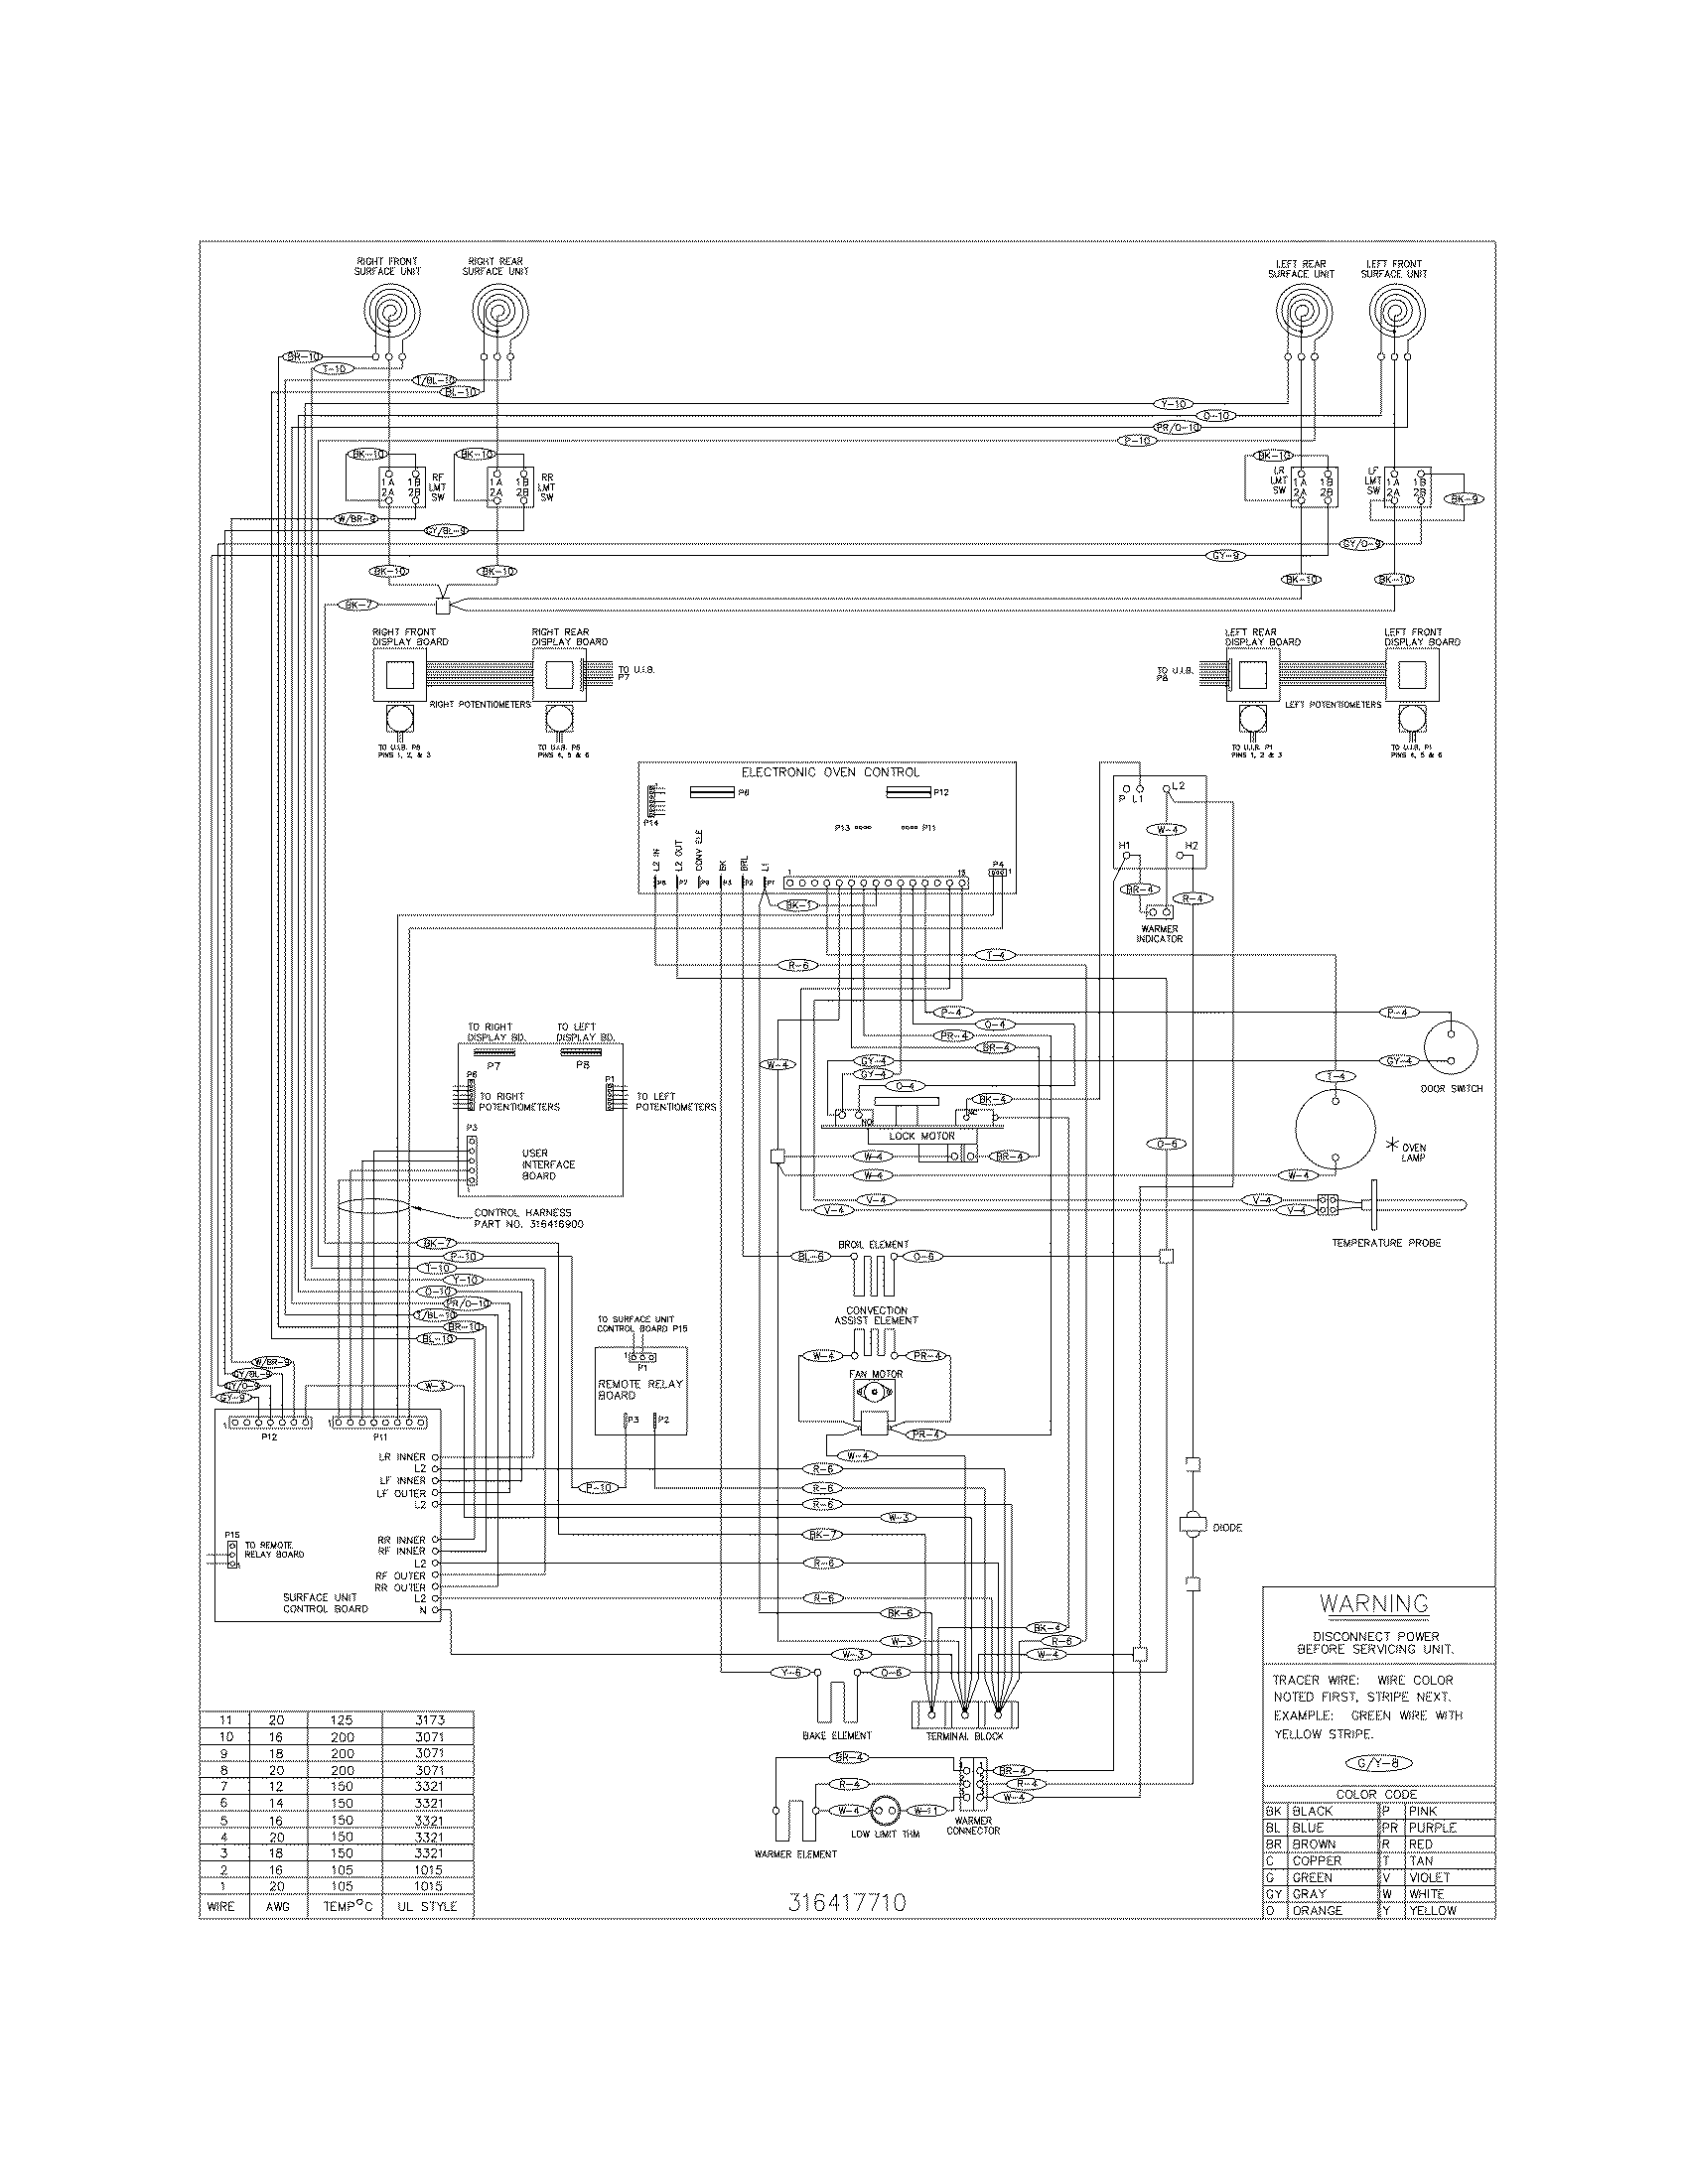 Delco Model 16221029 Wiring Schematic - Wiring Liry • on